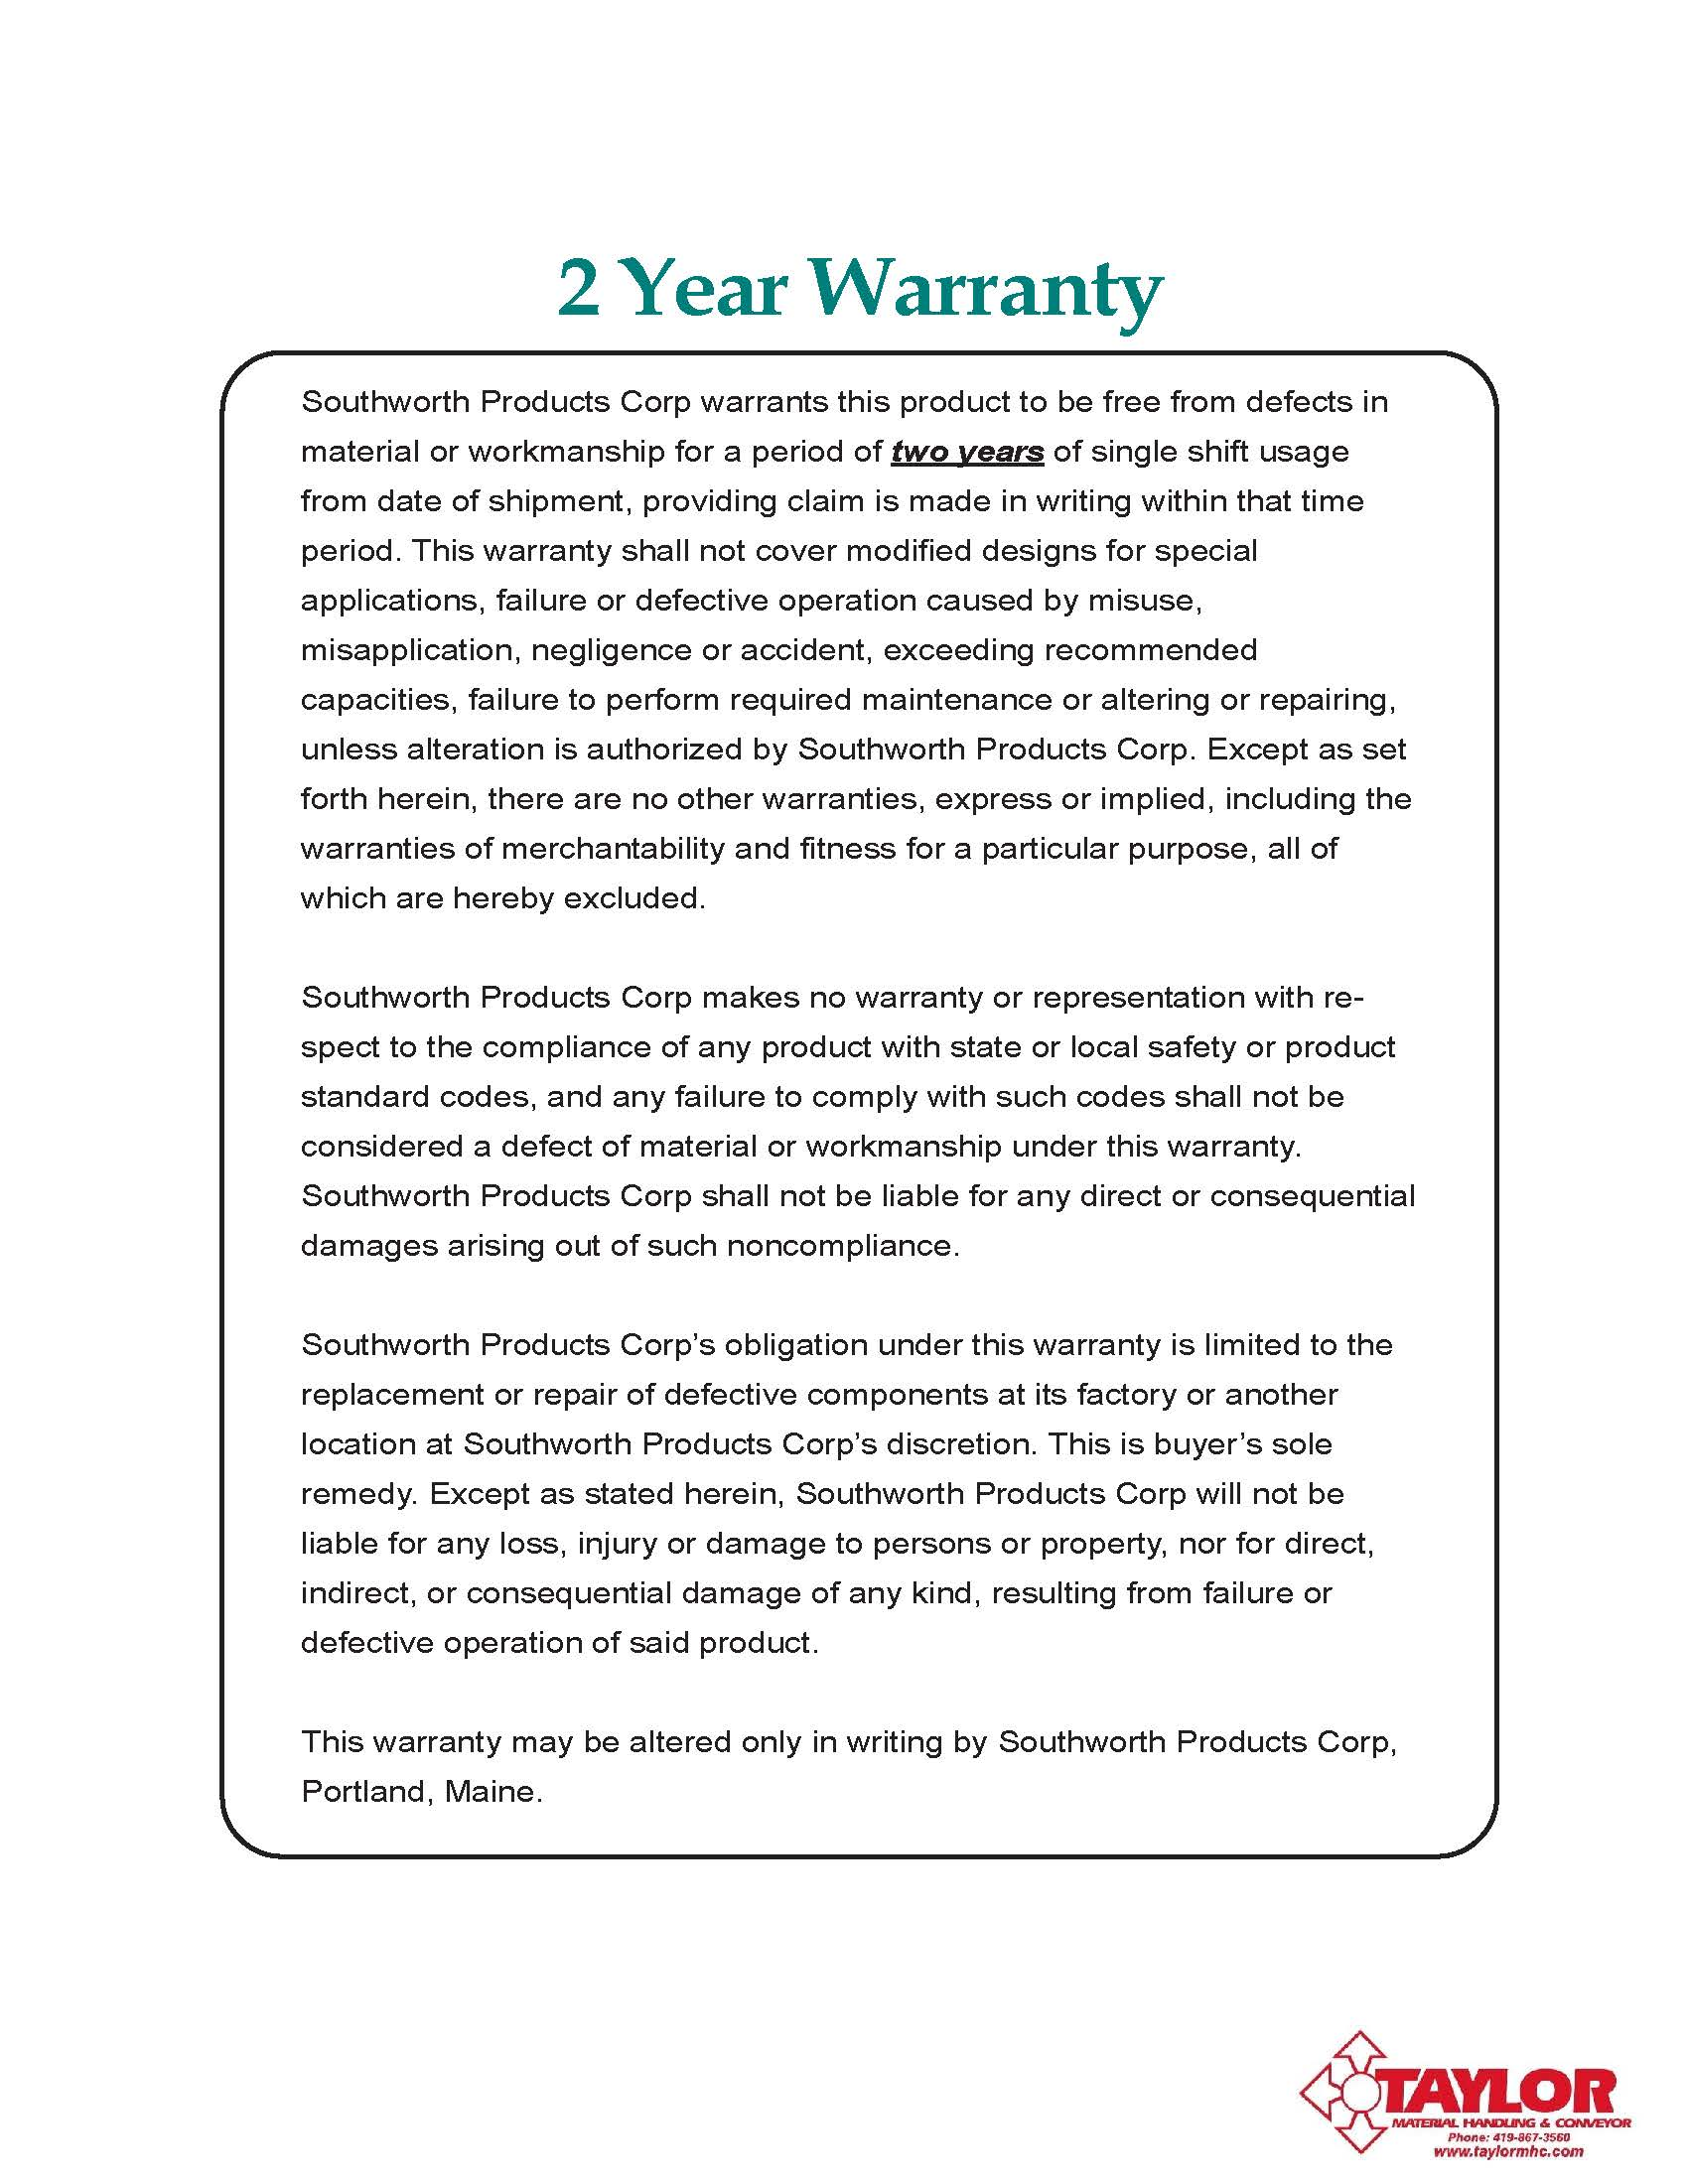 Southworth Standard Warranty